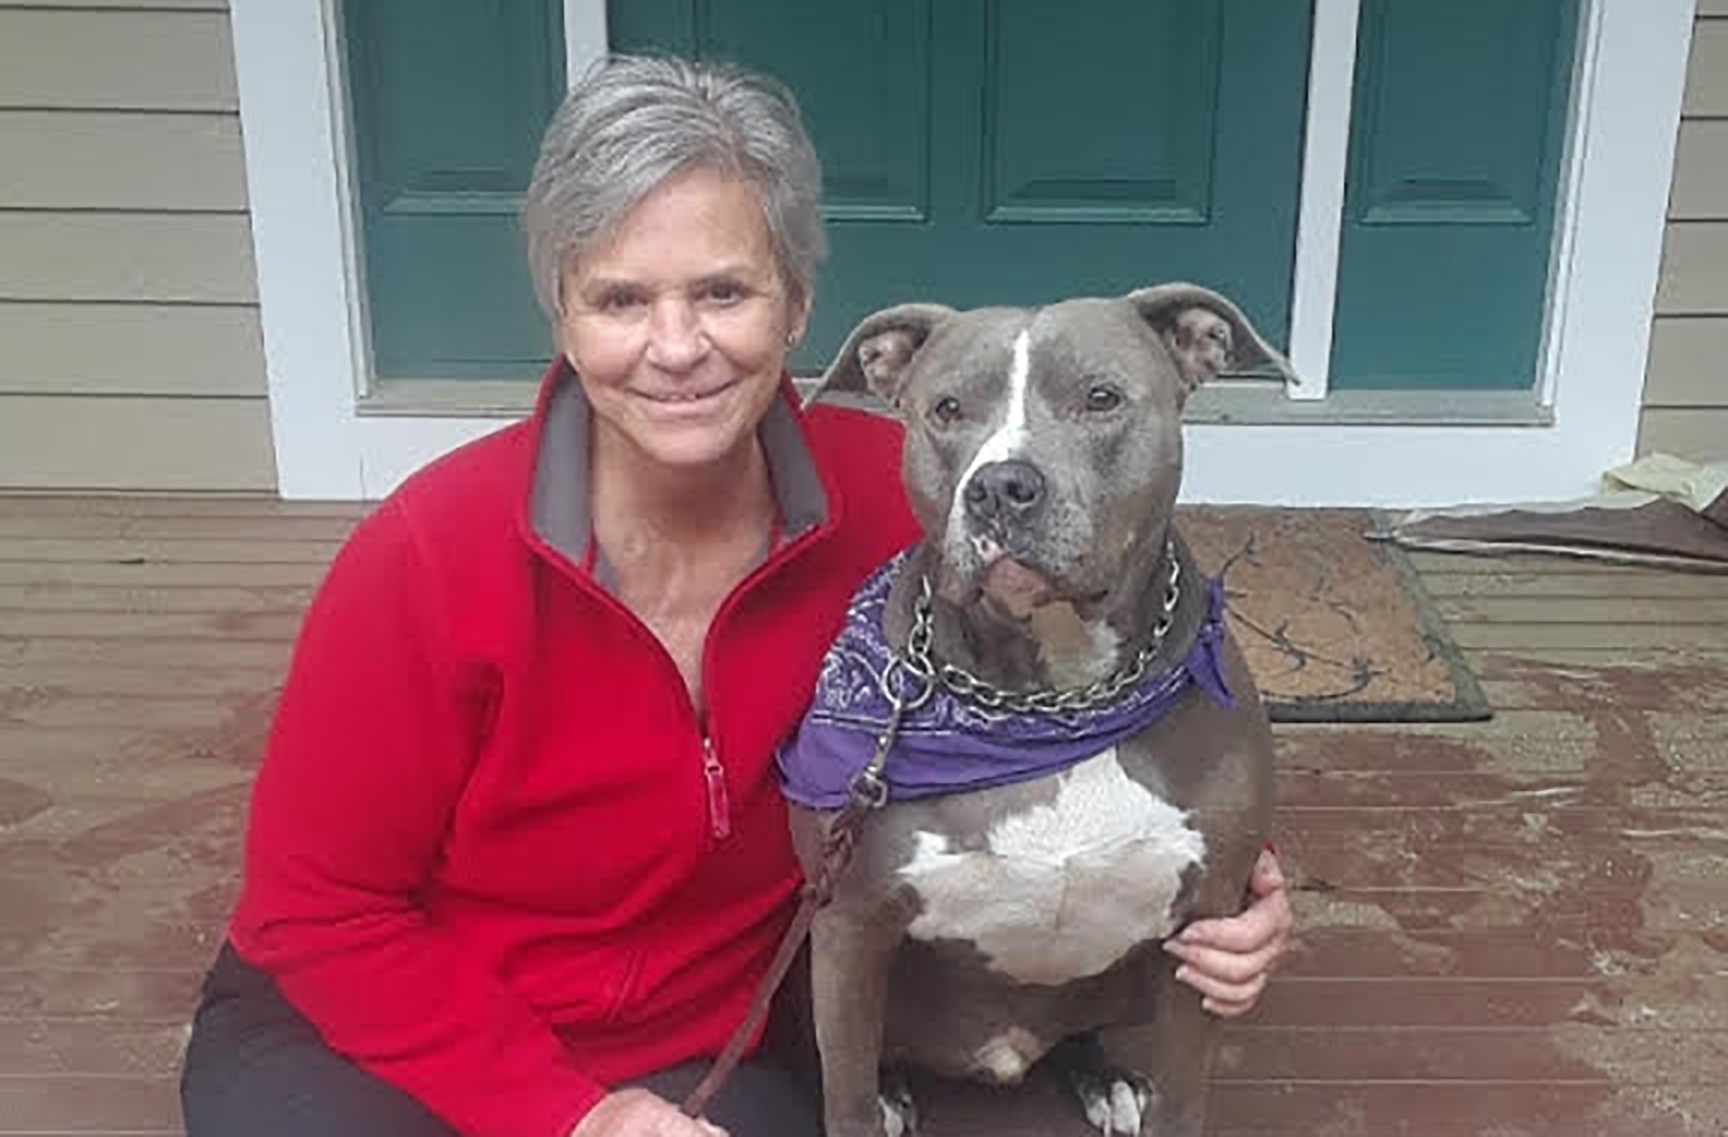 Corinne Economaki and blue are now enjoying life in Easton, MD.